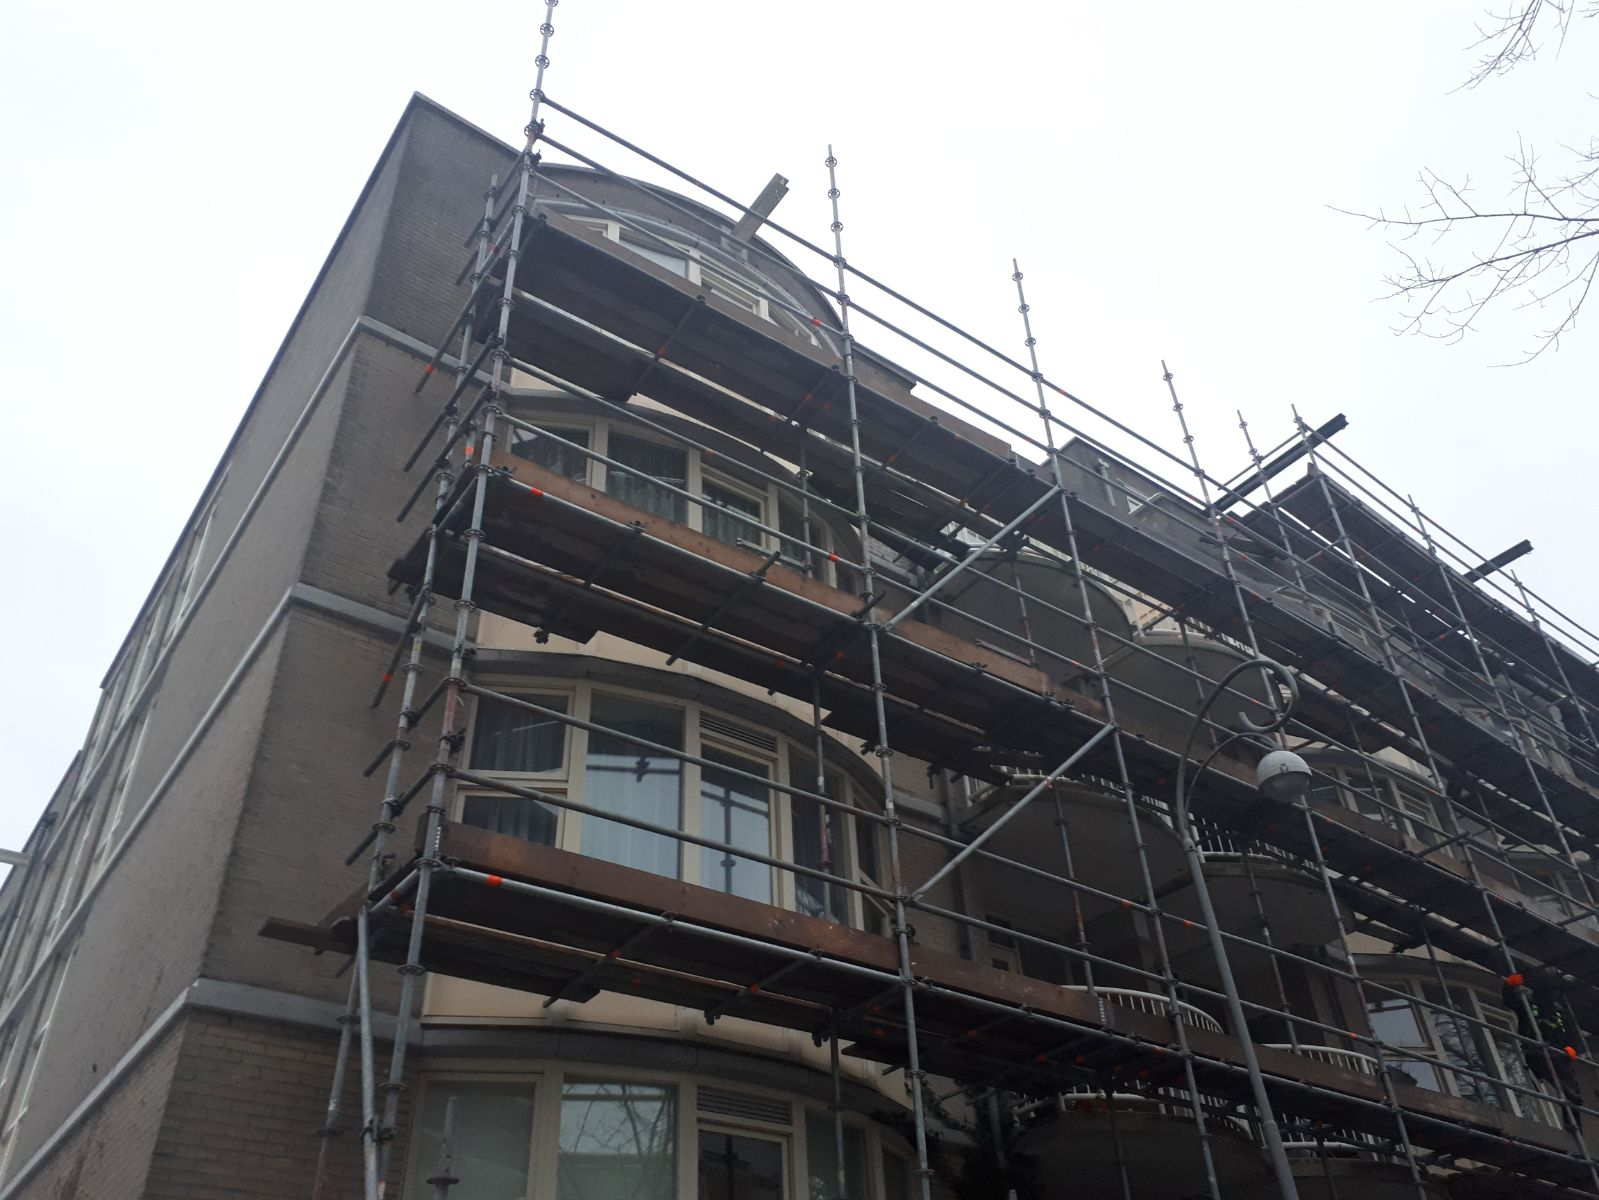 scaffolding_project-amsterdam-project-RAM-multi-invest15.